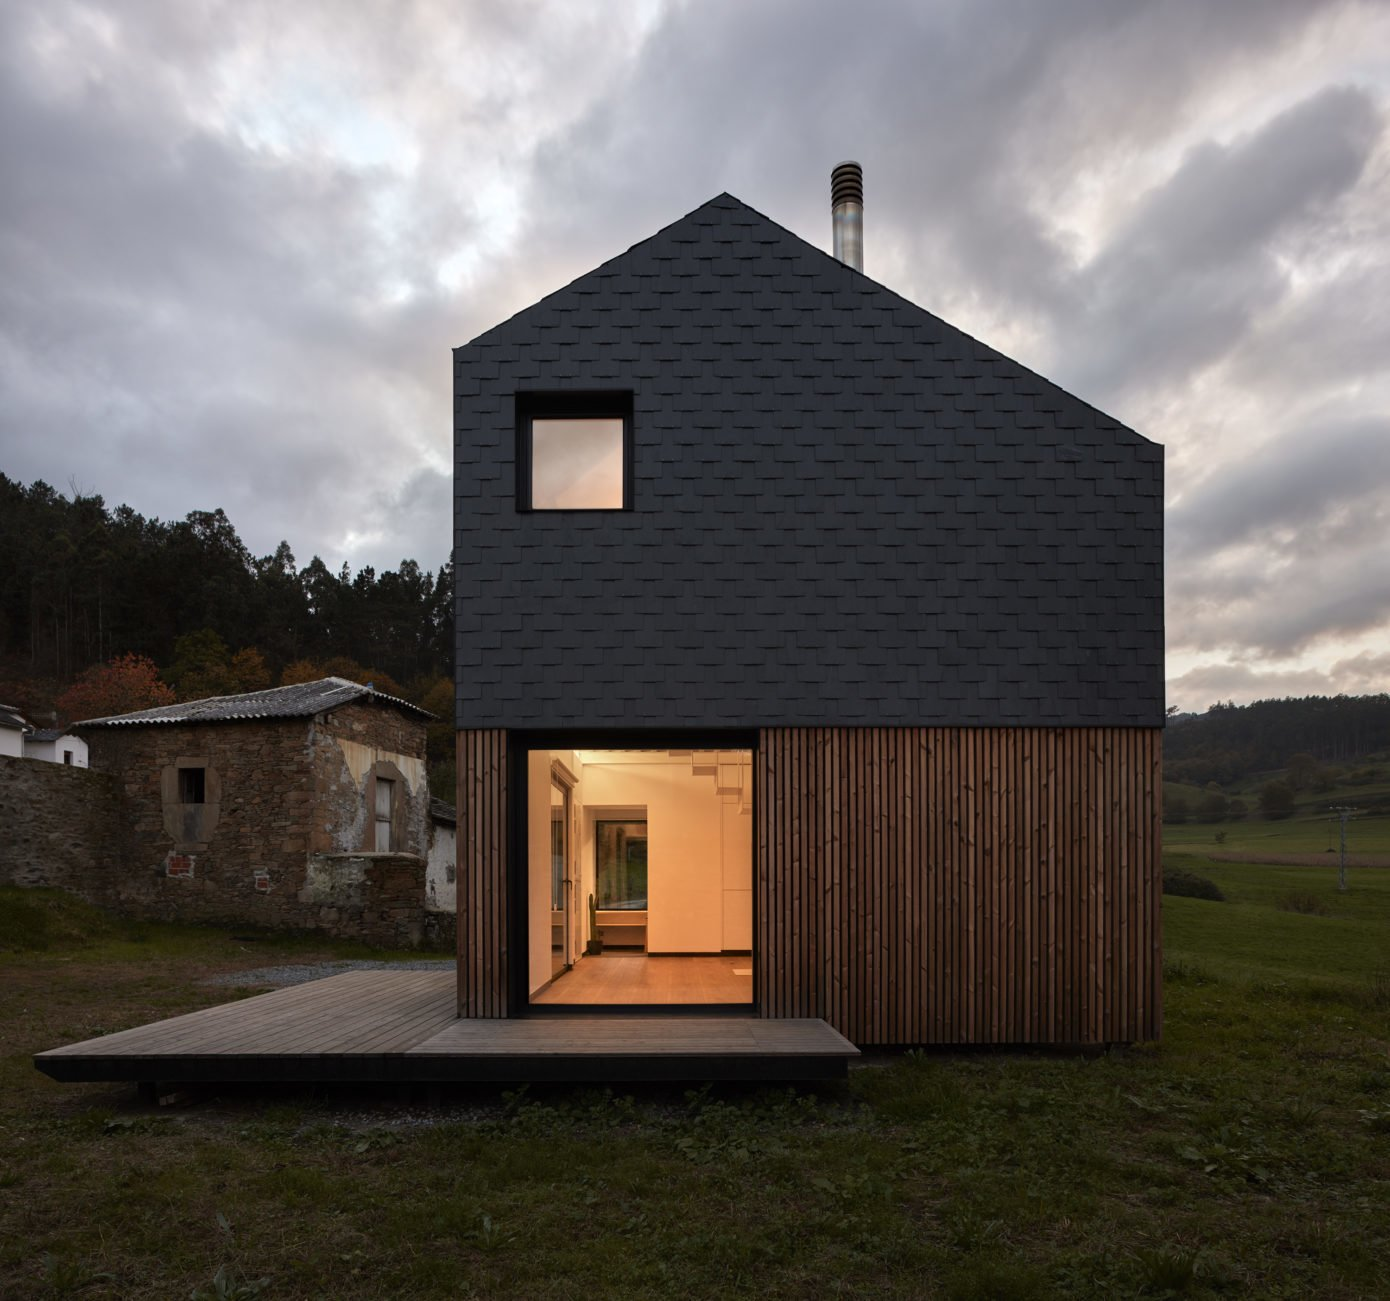 Exterior, House Building Type, Prefab Building Type, Wood Siding Material, and Saltbox RoofLine  Best Photos from This Affordable Prefab in Spain Only Took 5 Hours to Assemble